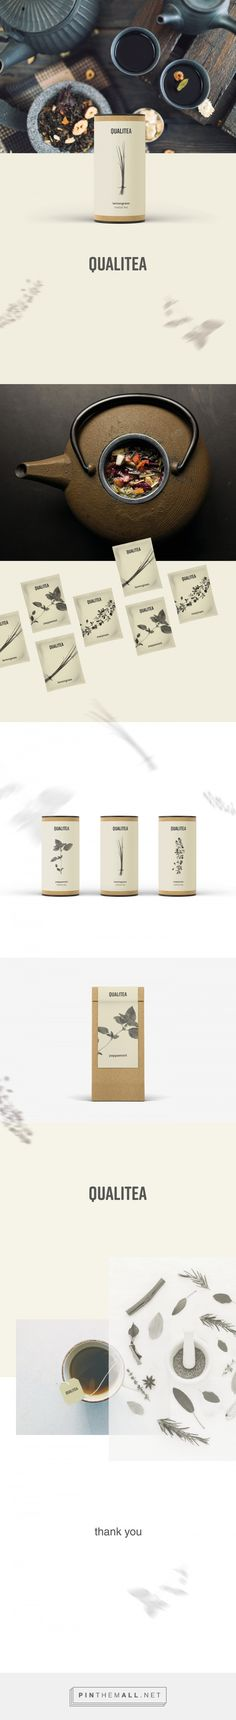 Qualitea Tea Packaging by Joanna Xenofontos | Fivestar Branding Agency – Design and Branding Agency & Curated Inspiration Gallery